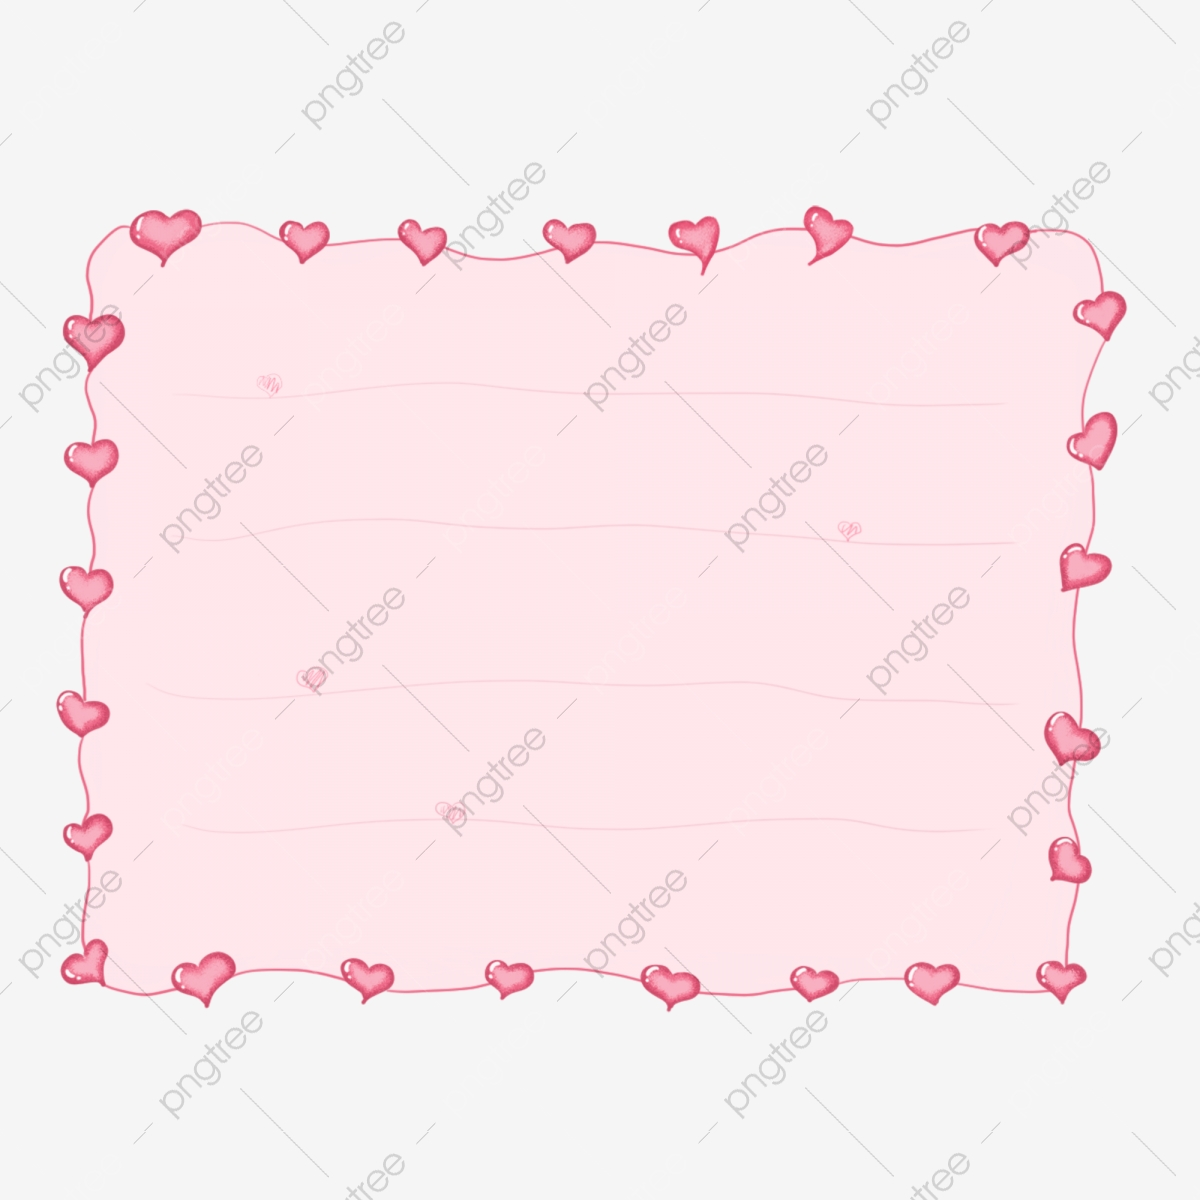 Hand Painted Hand Account Material Dividend Red Love Border